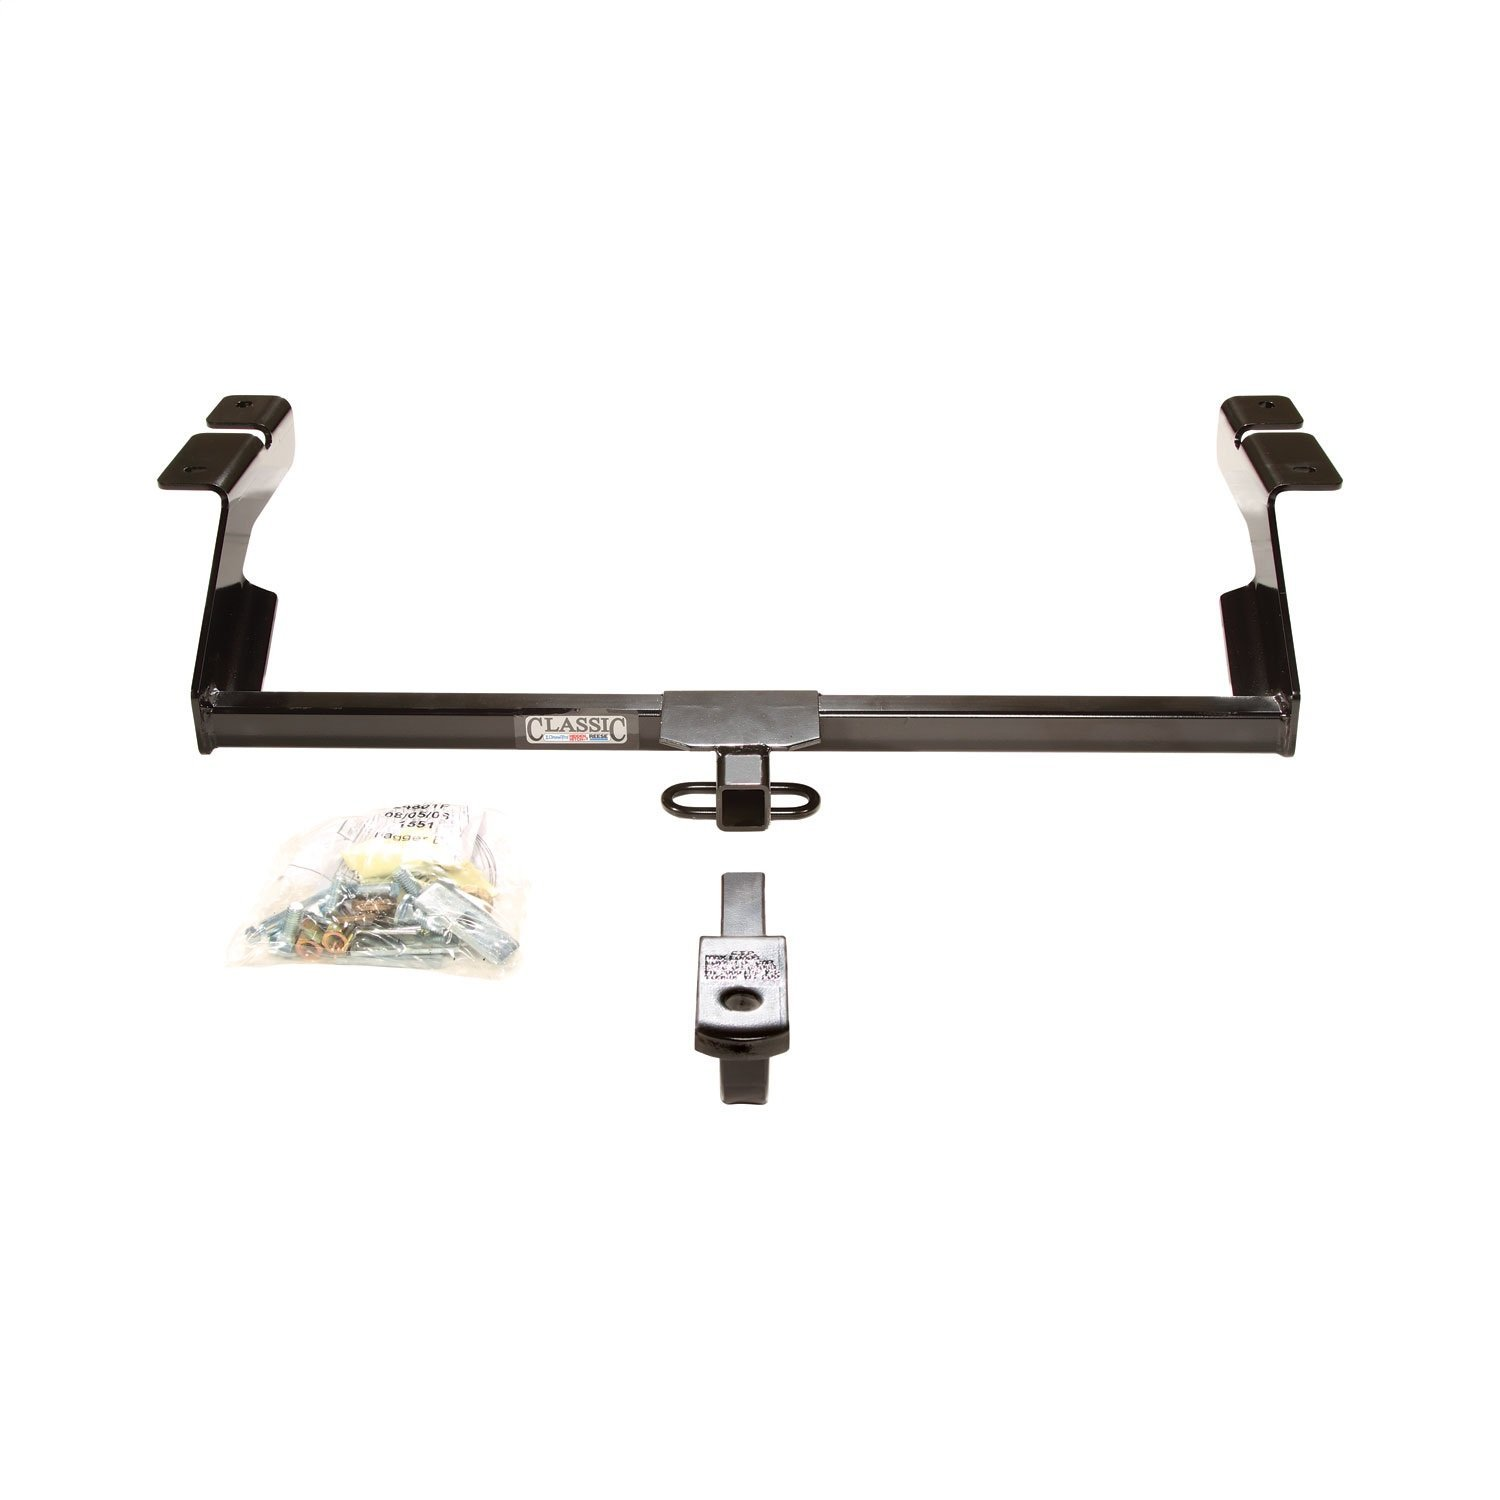 DRAW TITE 24801 Class I Sportframe Hitch with 1-1//4 Square Receiver Tube Opening Draw-Tite